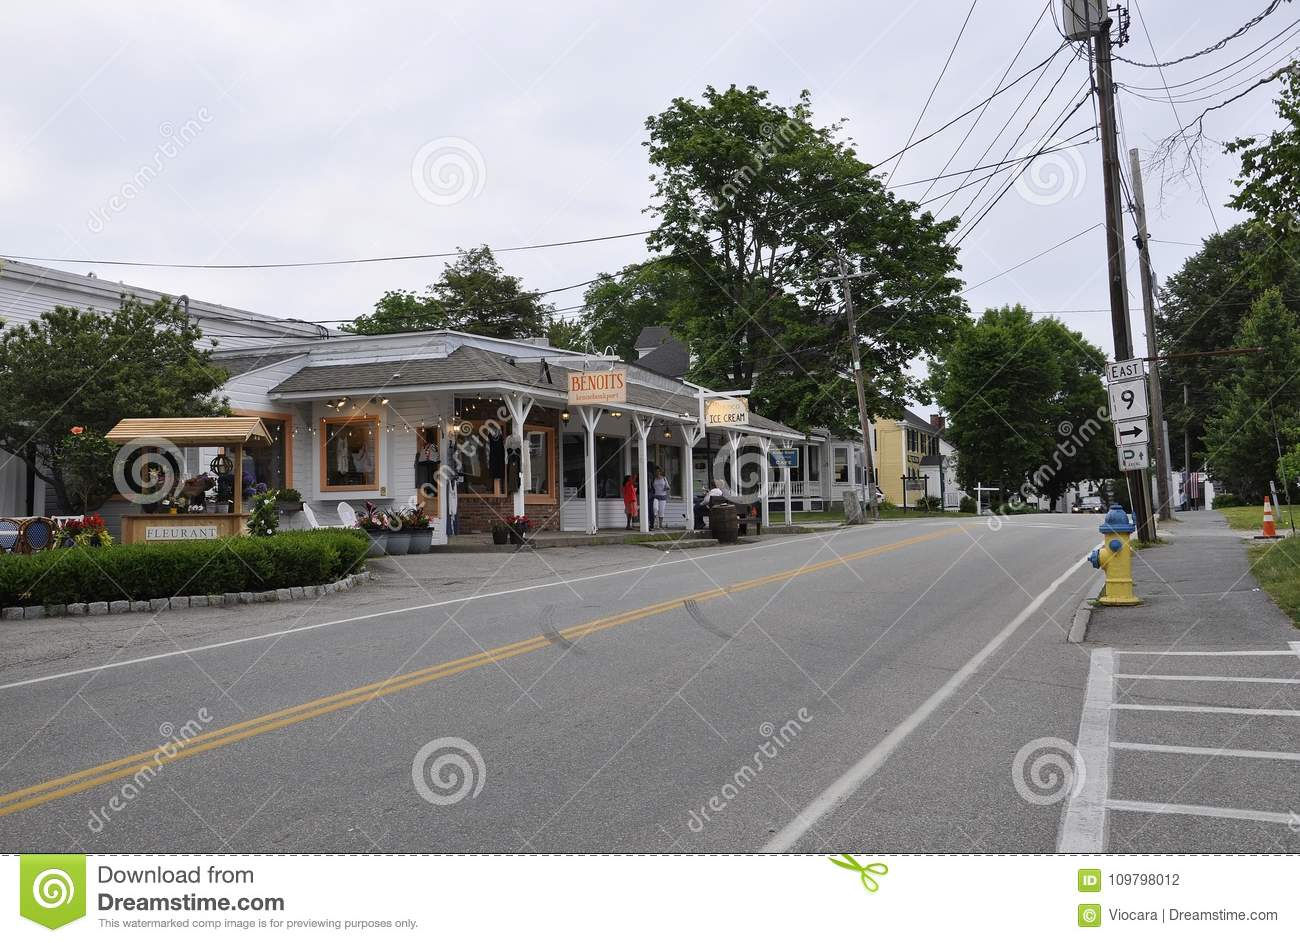 Kennebunkport, Maine, 30th June: Downtown Historic Inn from Kennebunkport in Maine state of USA